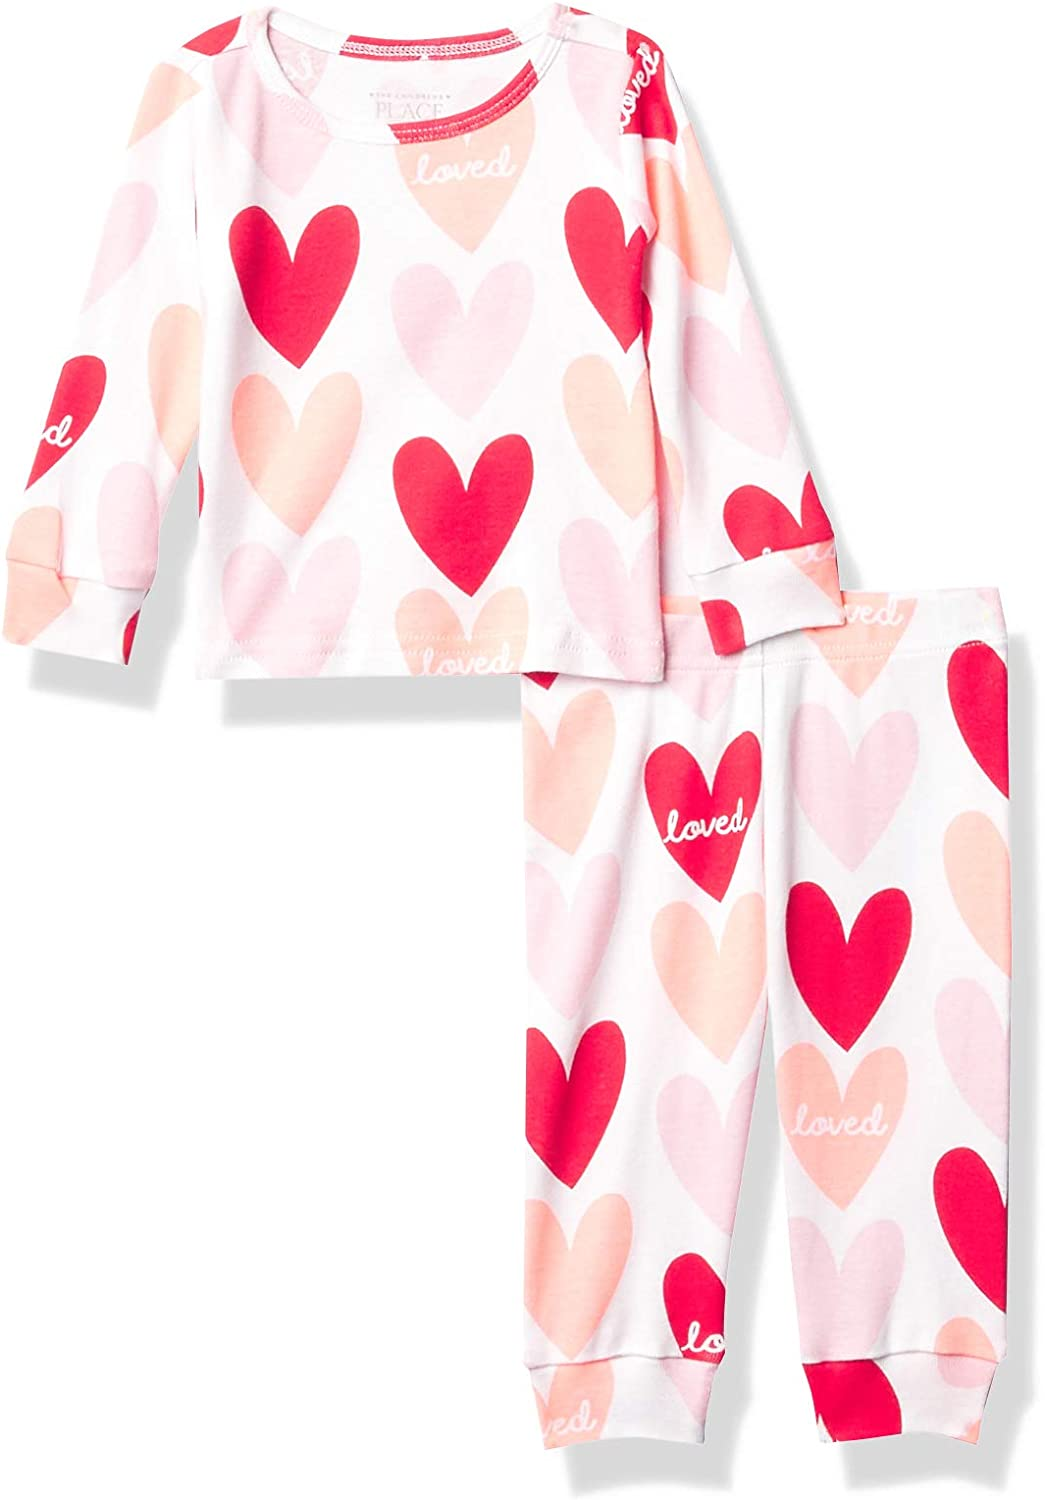 The Children's Place Girls' Baby and Toddler Hearts Snug Fit Cotton Pajamas